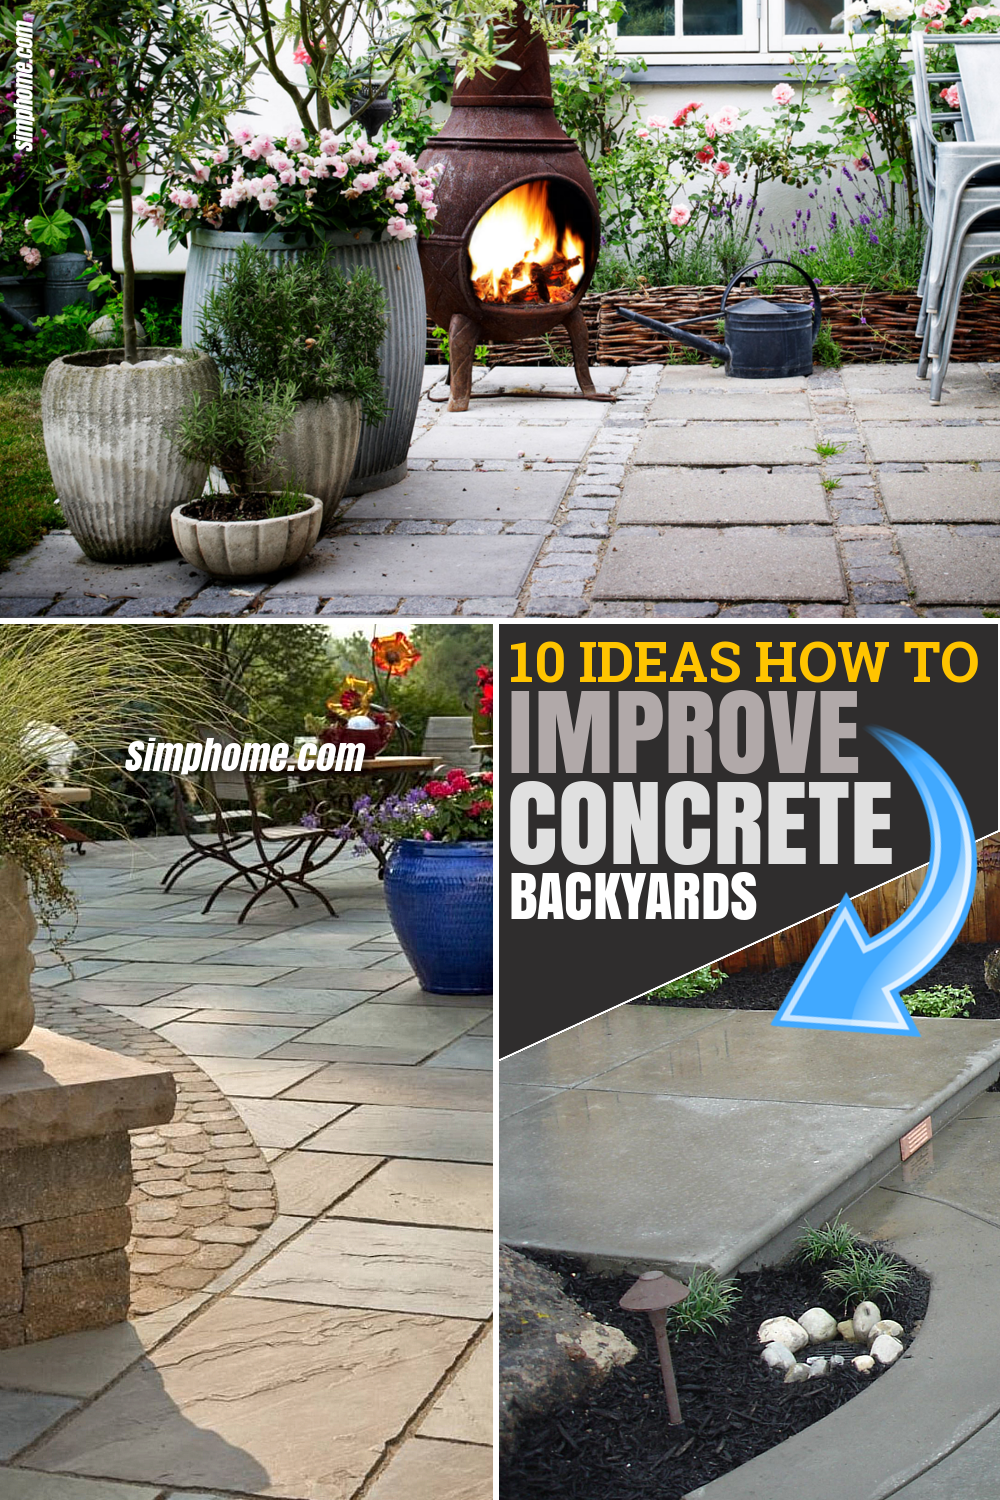 10 CREATIVE IDEAS HOW TO IMPROVE CONCRETE BACKYARDS via SIMPHOME.COM Featured Pinterest Image